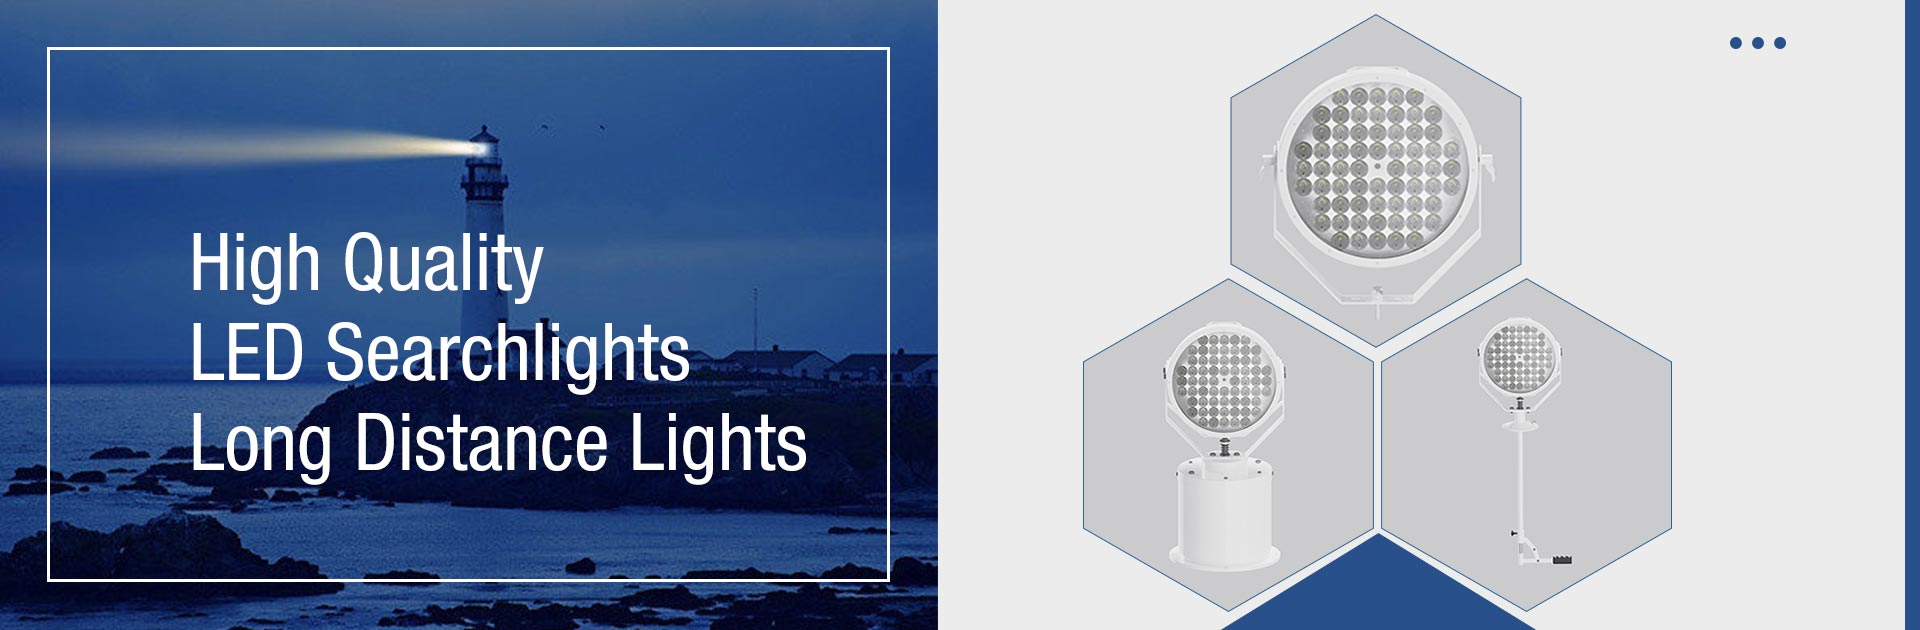 https://www.greeninovaled.com/products/fixtures/led-searchinglights/